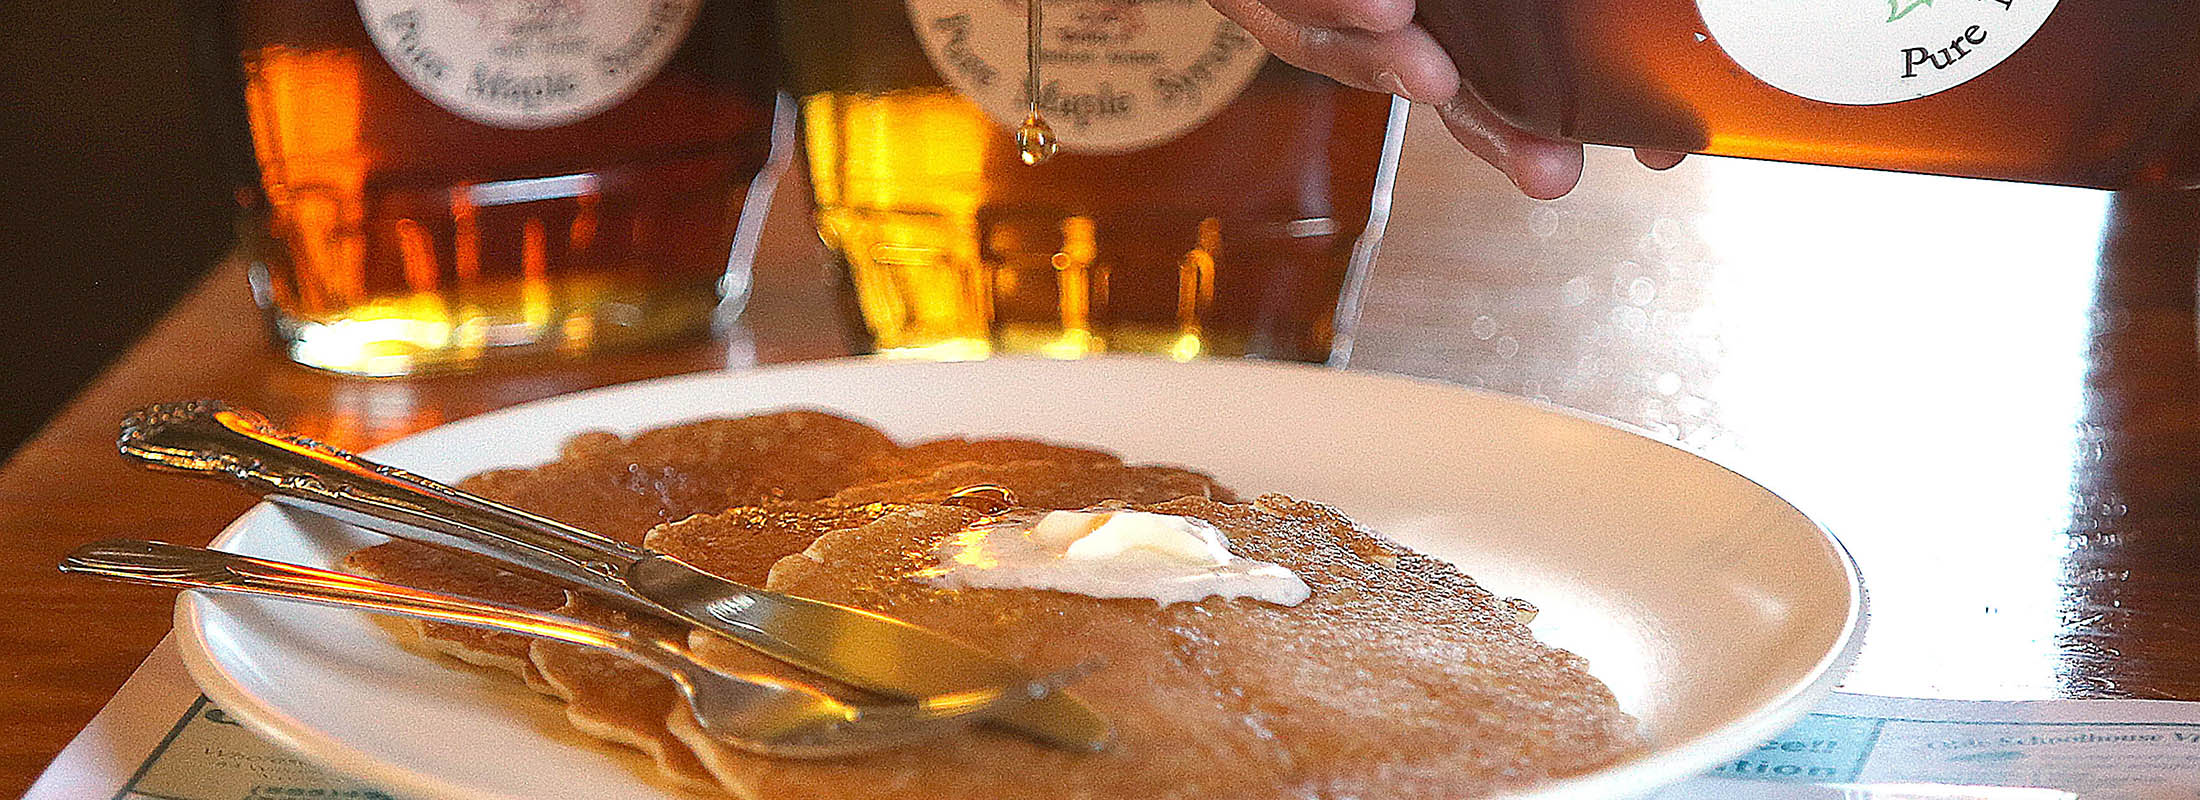 """Andrew Galarneau writes, """"Visitors to a sugarhouse come away feeling faintly sticky from the sweet maple steam and ready for some pancakes."""" (Robert Kirkham/News file photo)"""